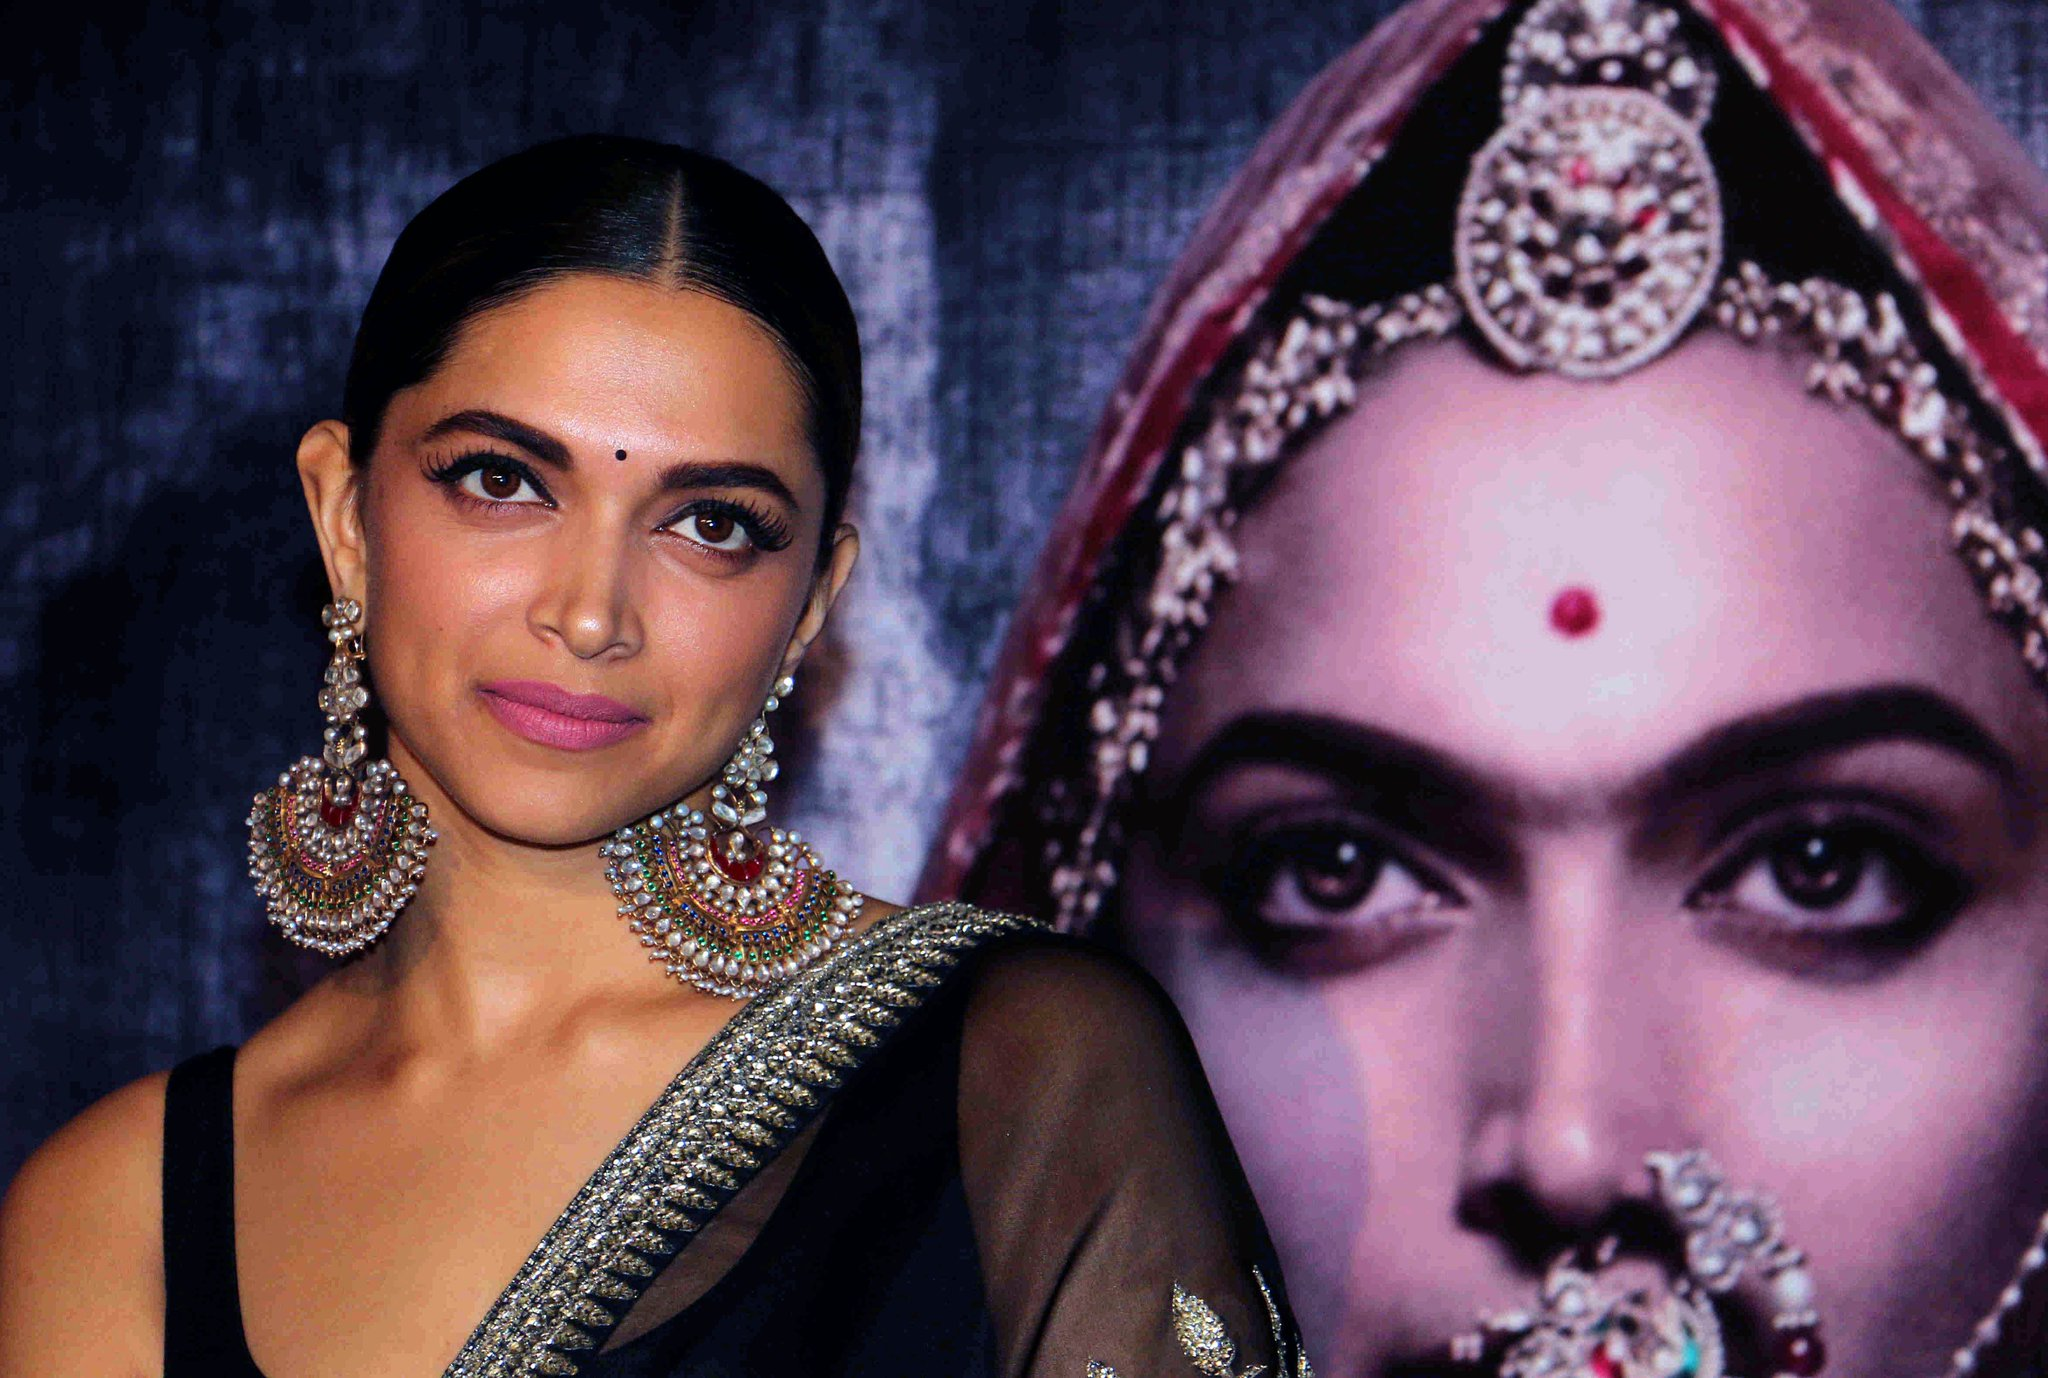 The Times Of India On Twitter Padmavatirow Protester Offers Rs 5 Crore For Heads Of Deepikapadukone Sanjay Leela Bhansali Https T Co Xmvuoj96lo Https T Co S7xa4nldn1 Join facebook to connect with gungi behri and others you may know. twitter